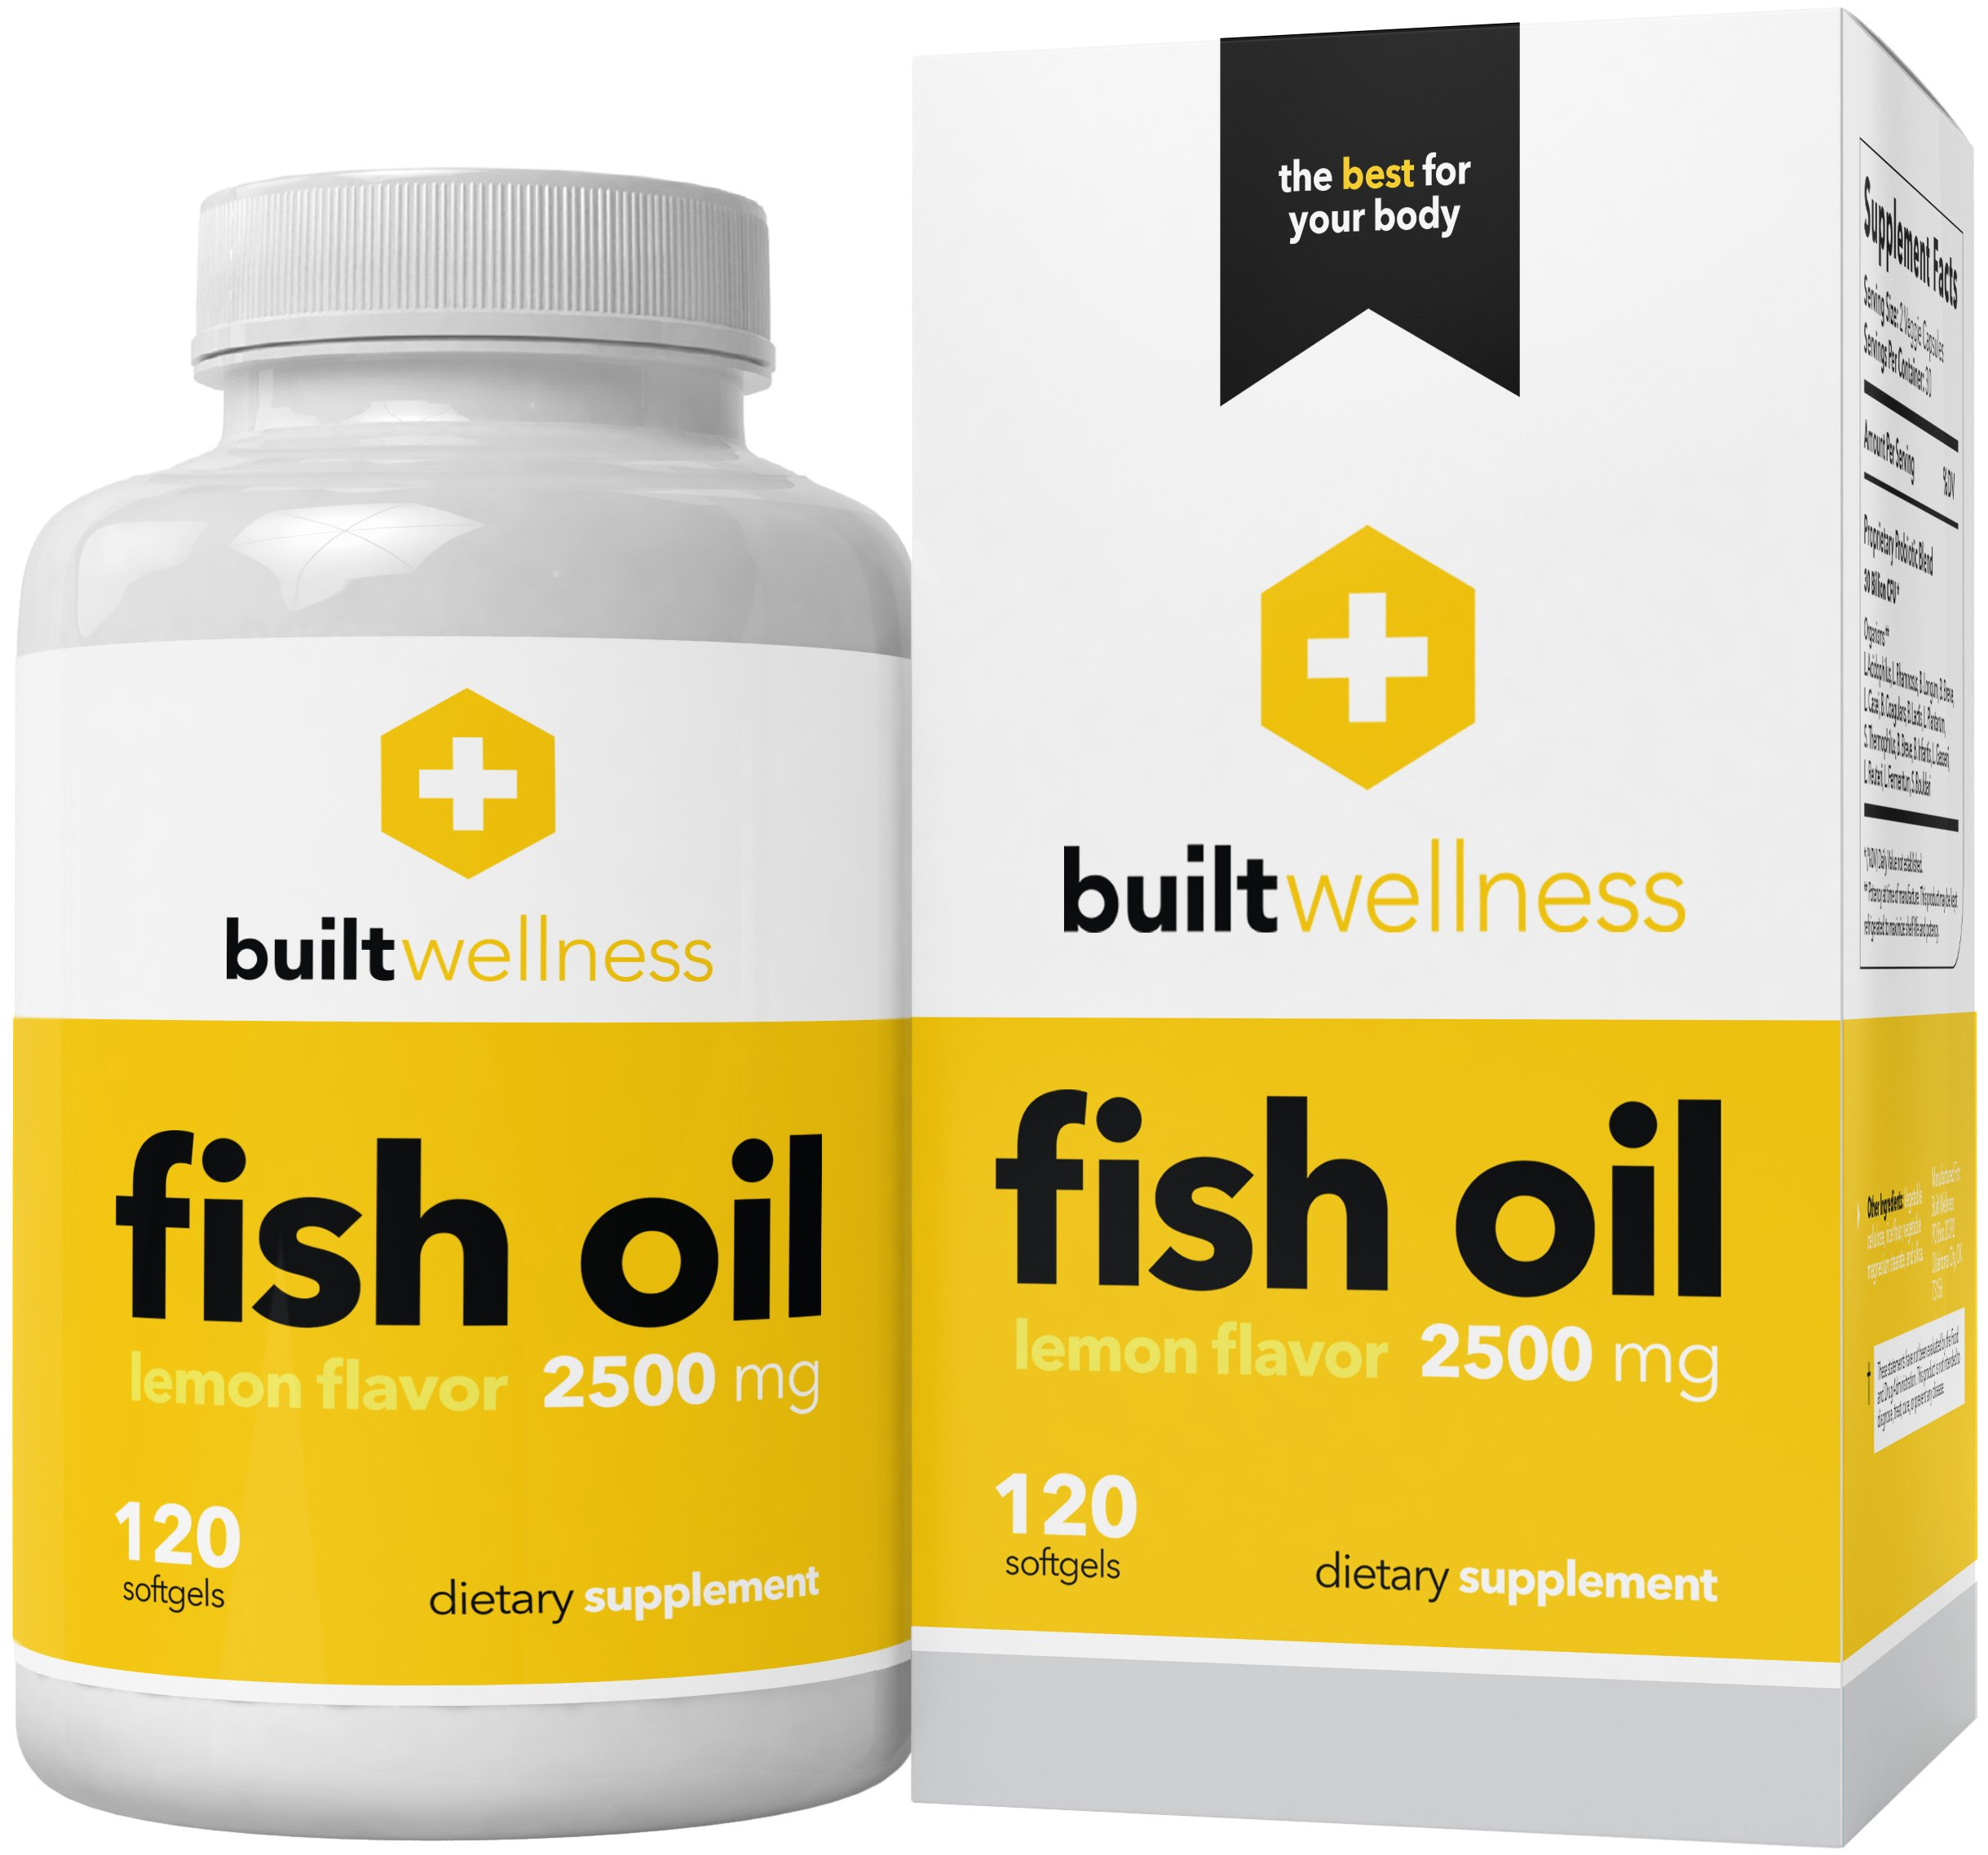 Built wellness coq10 supplement 100 mg 120 for Coq10 and fish oil